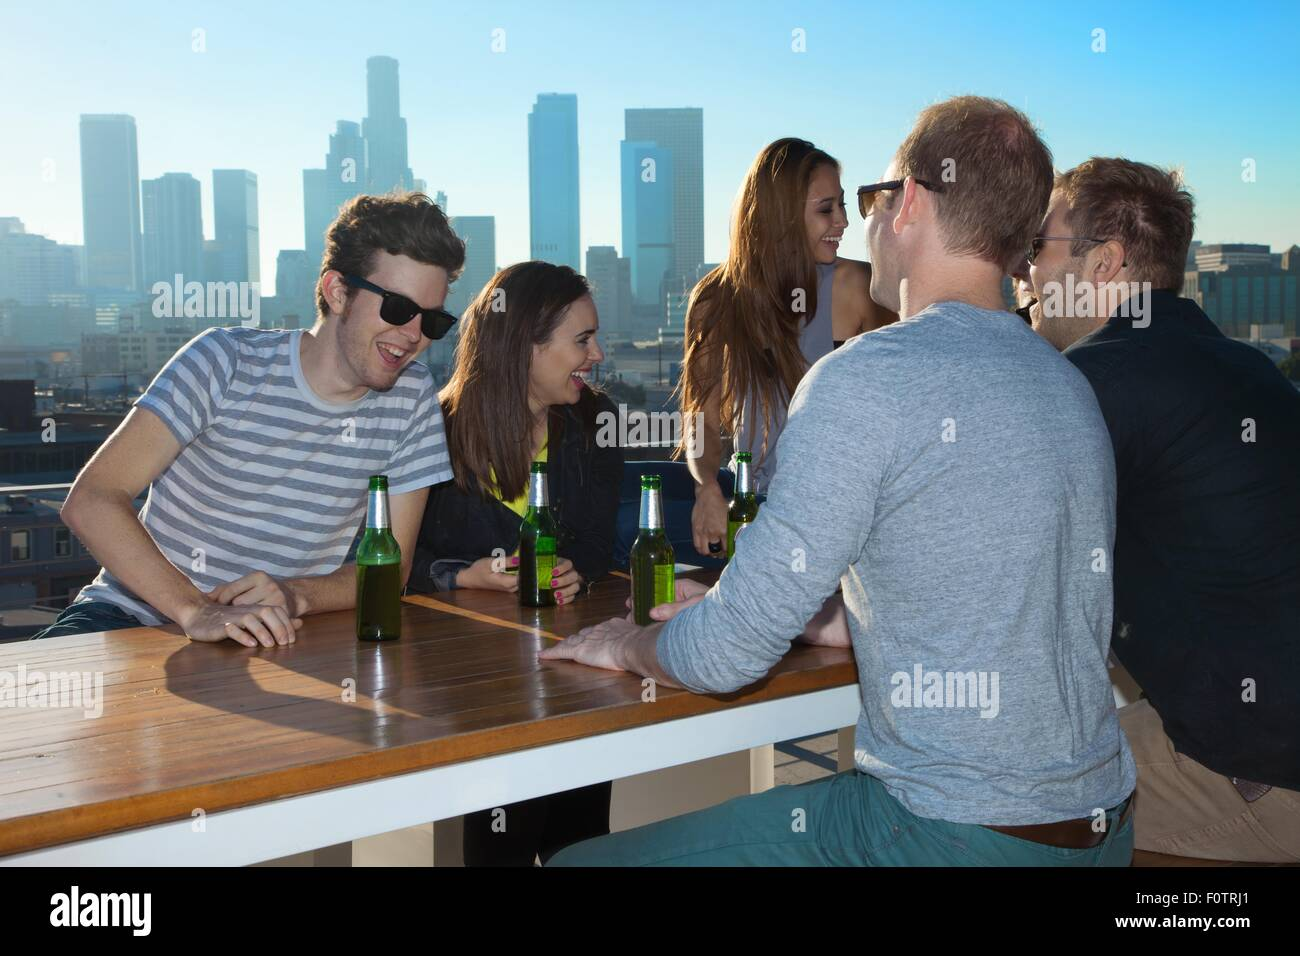 Six adult friends talking and drinking beer at rooftop bar with Los Angeles skyline, USA - Stock Image